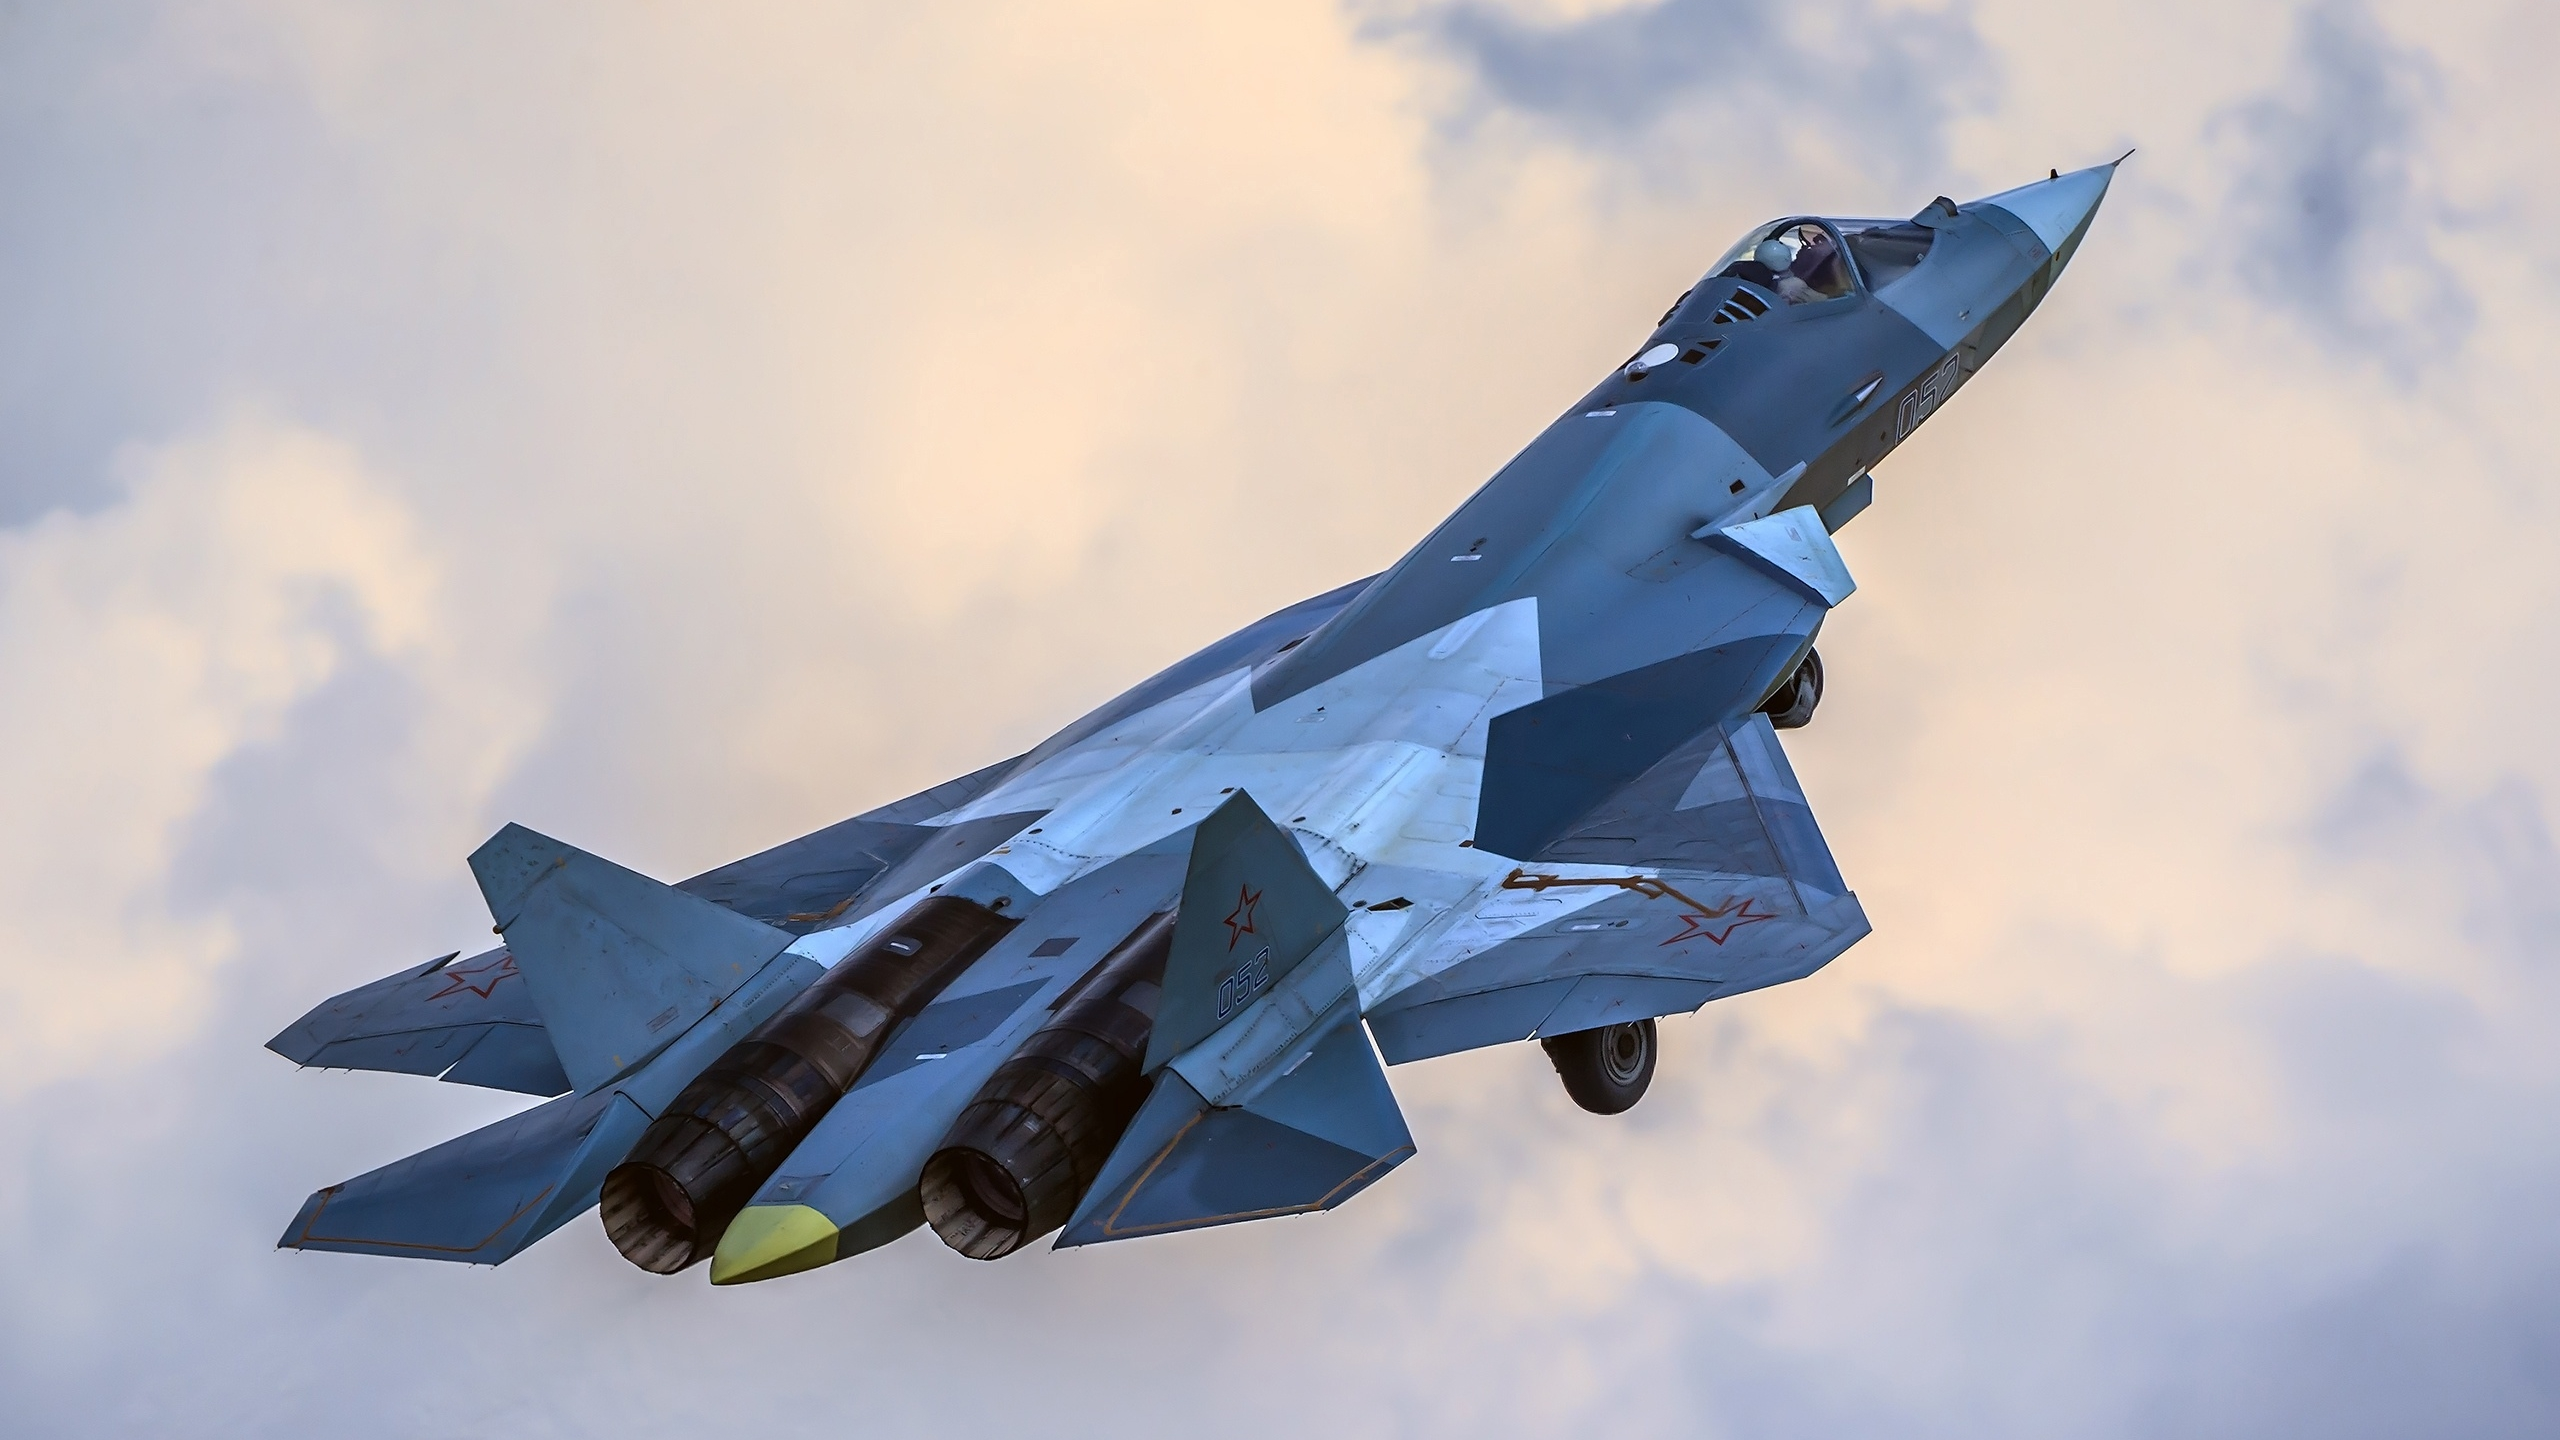 Did Russia's Deadly Su-57 Stealth Fighter Get Ready for 'War' in